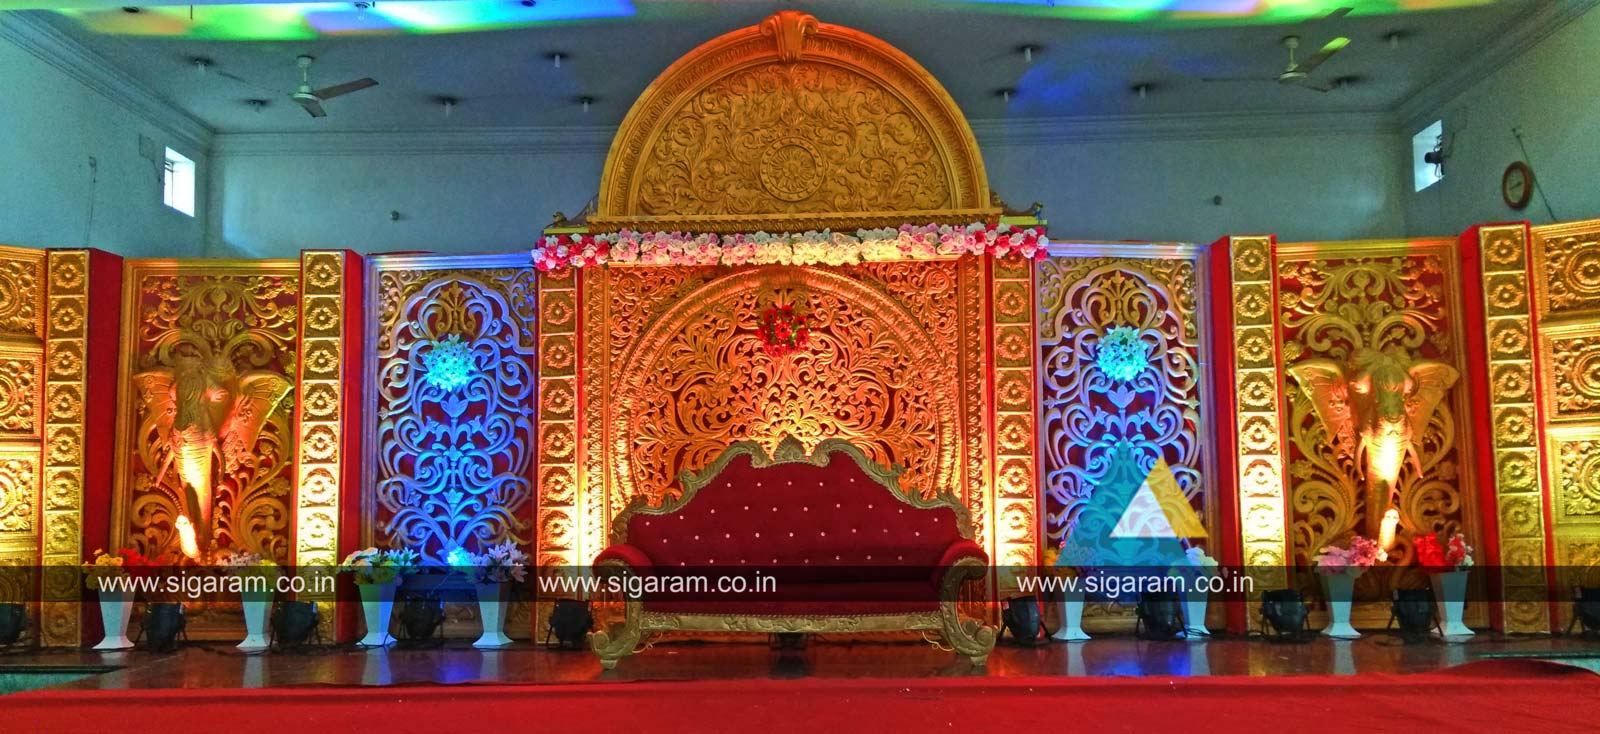 Reception stage decoration done at Thamizh Thirumana Maligai Puducherry SIGARAM WEDDING DECORATORS